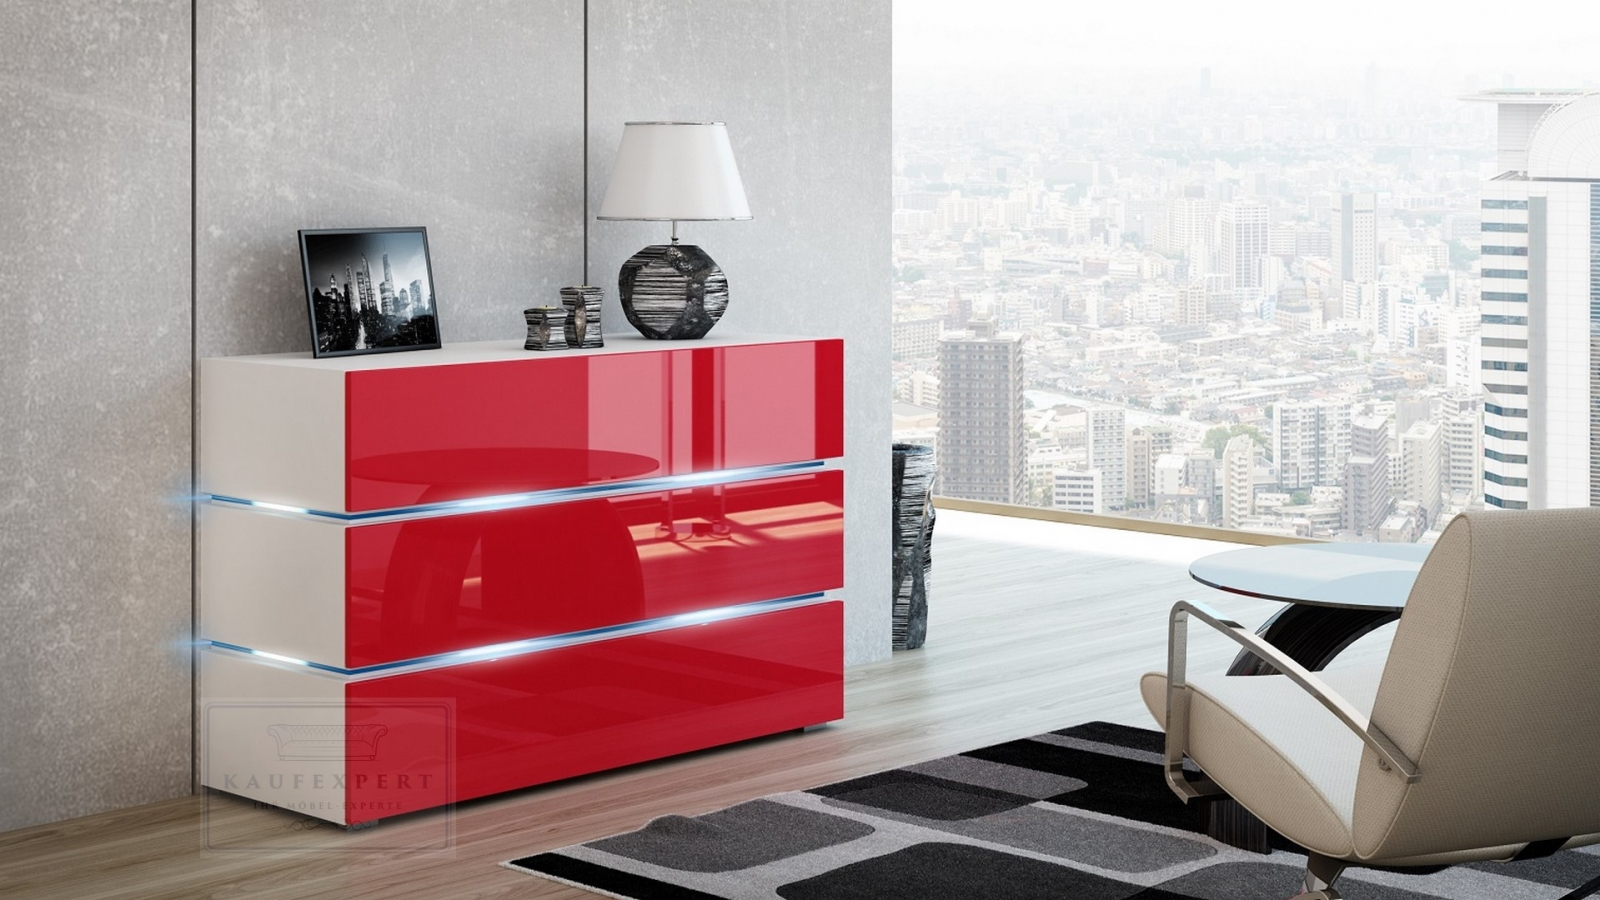 kaufexpert kommode shine sideboard 120 cm rot hochglanz wei led beleuchtung modern design tv. Black Bedroom Furniture Sets. Home Design Ideas